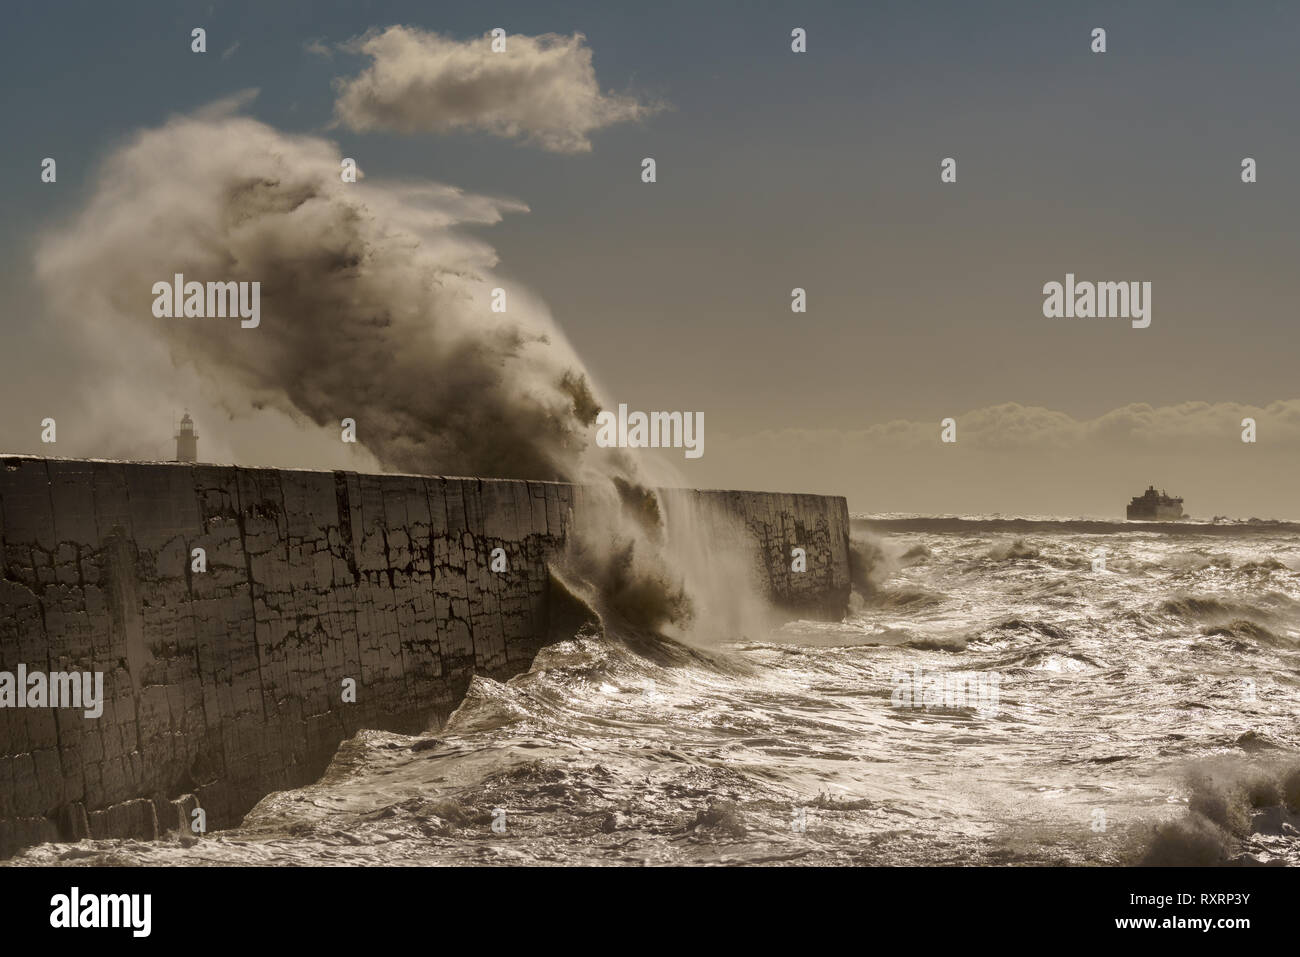 Newhaven, South Coast. 10th Mar 2019. UK Weather: Big waves hit the South Coast of Newhaven,  East Sussex. Credit: Lloyd Lane/Alamy Live News Stock Photo